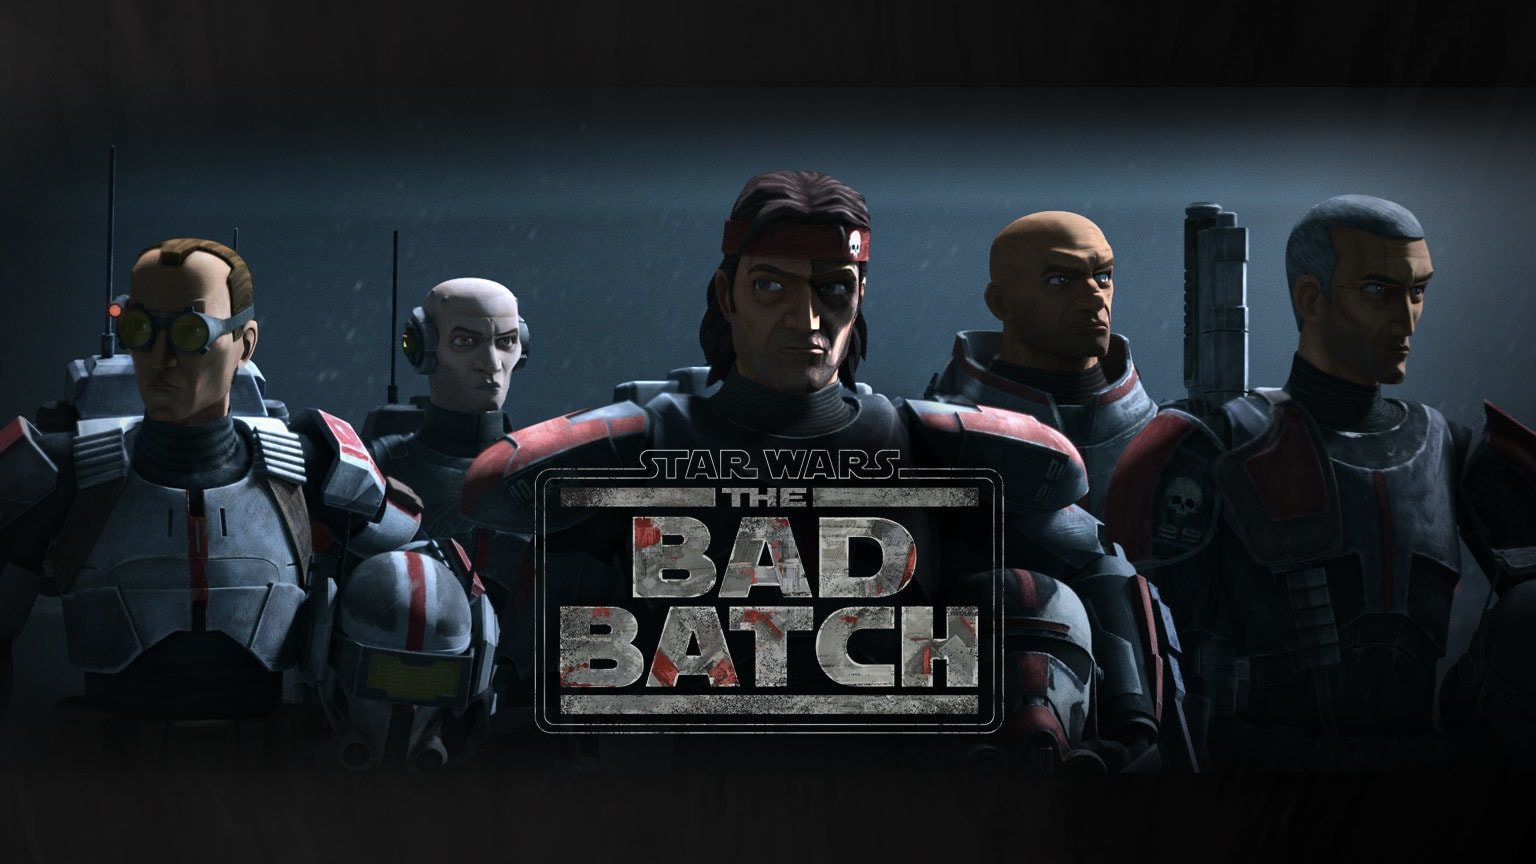 Star Wars: The Bad Batch Will Come to Disney+ on May the 4th